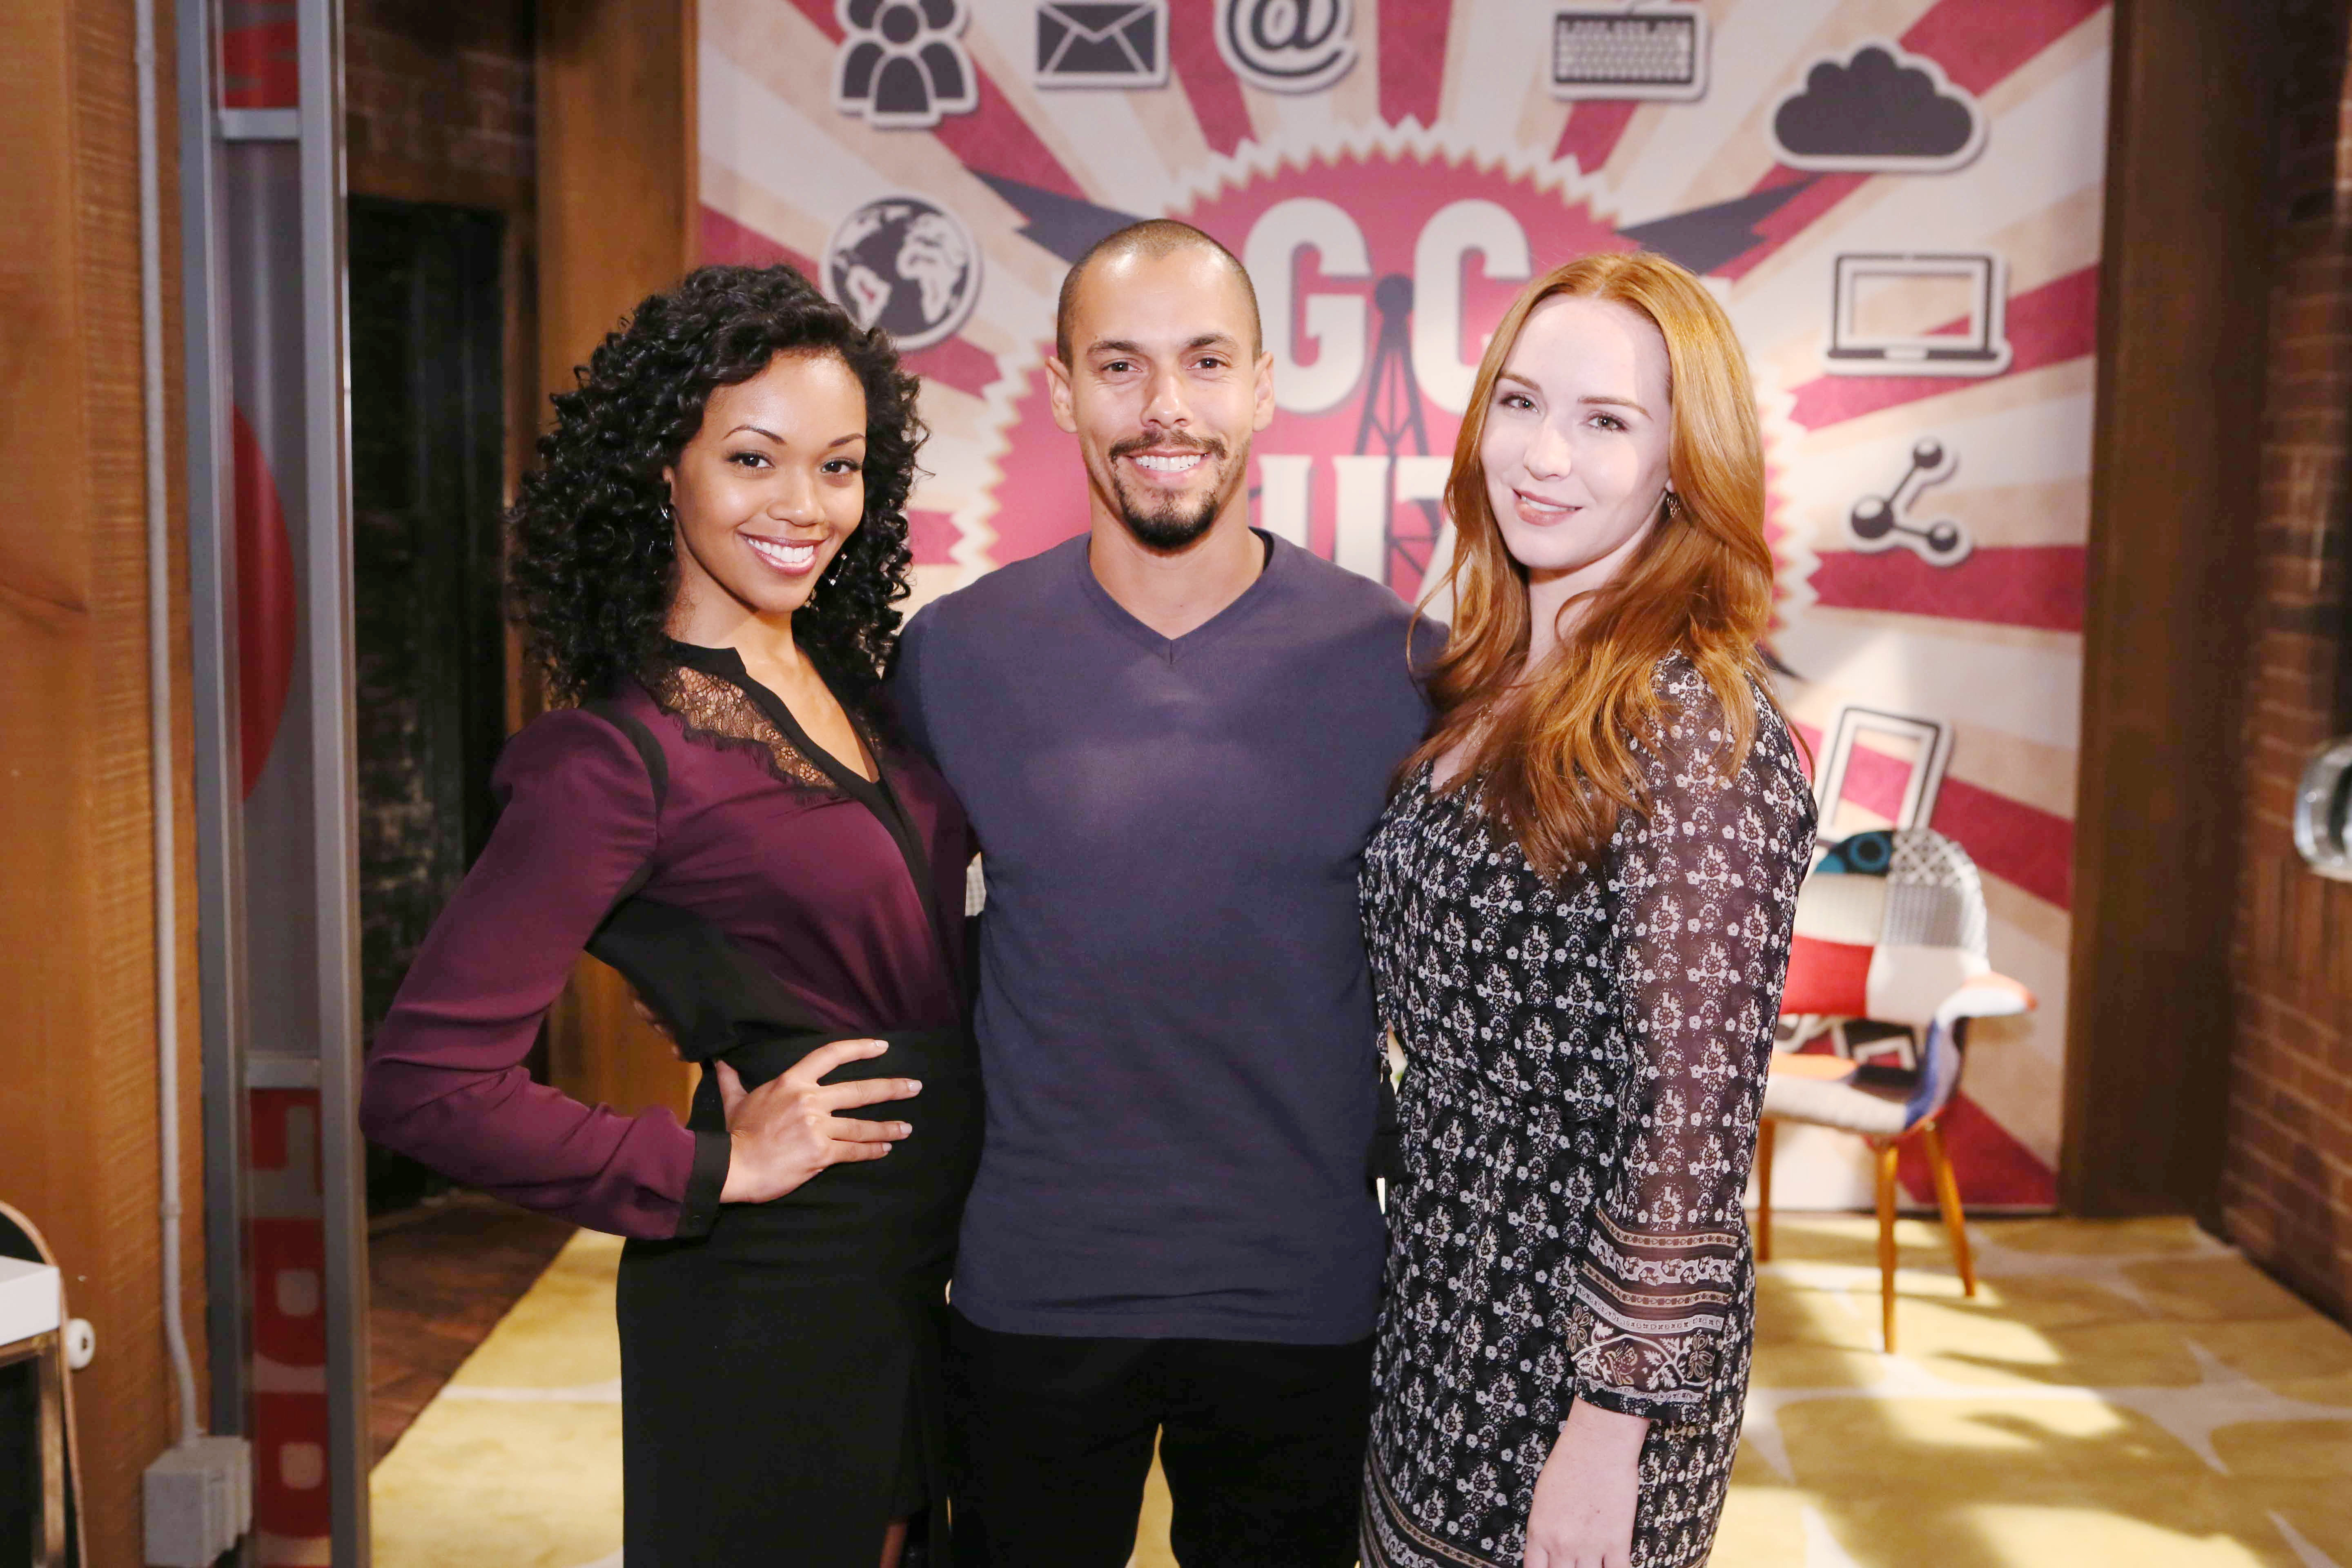 """Bryton James, Camryn Grimes, Mishael Morgan """"The Young and the Restless"""" Set  CBS television City Los Angeles 10/13/16 © Howard Wise/jpistudios.com 310-657-9661"""